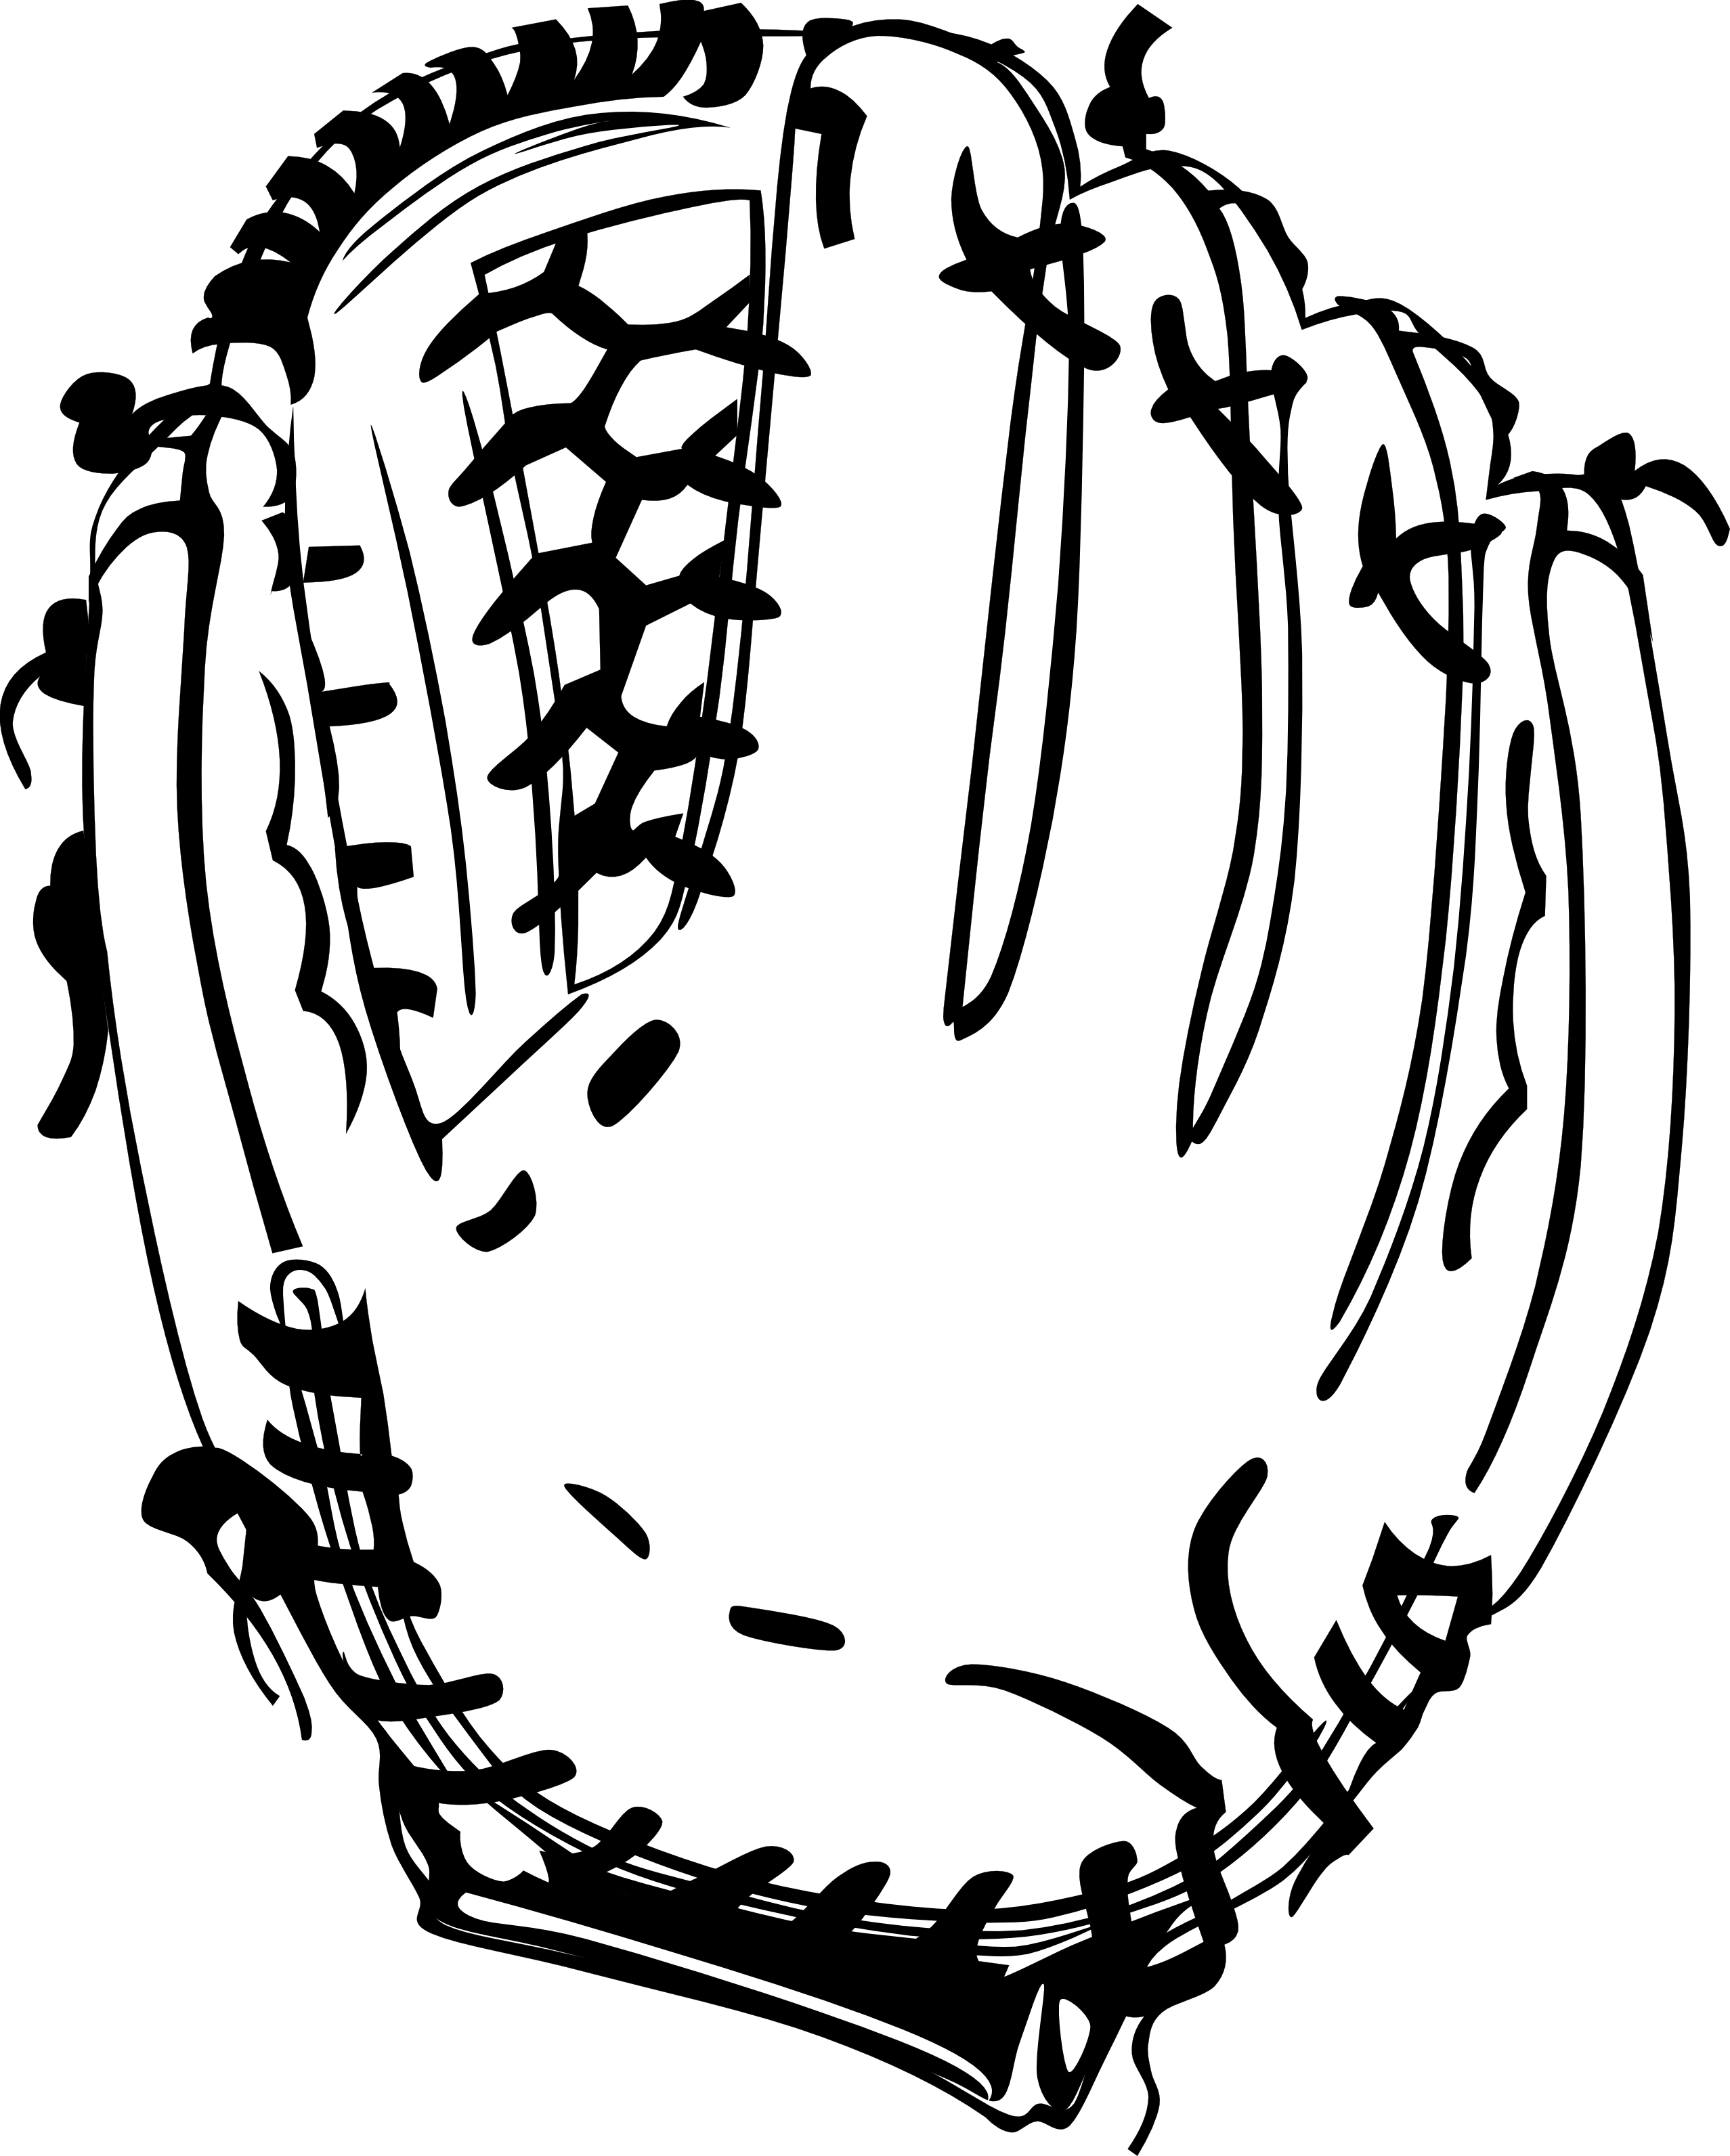 Baseball jersey clipart black and white png free download Baseball Clipart Black And White | Clipart Panda - Free Clipart Images png free download